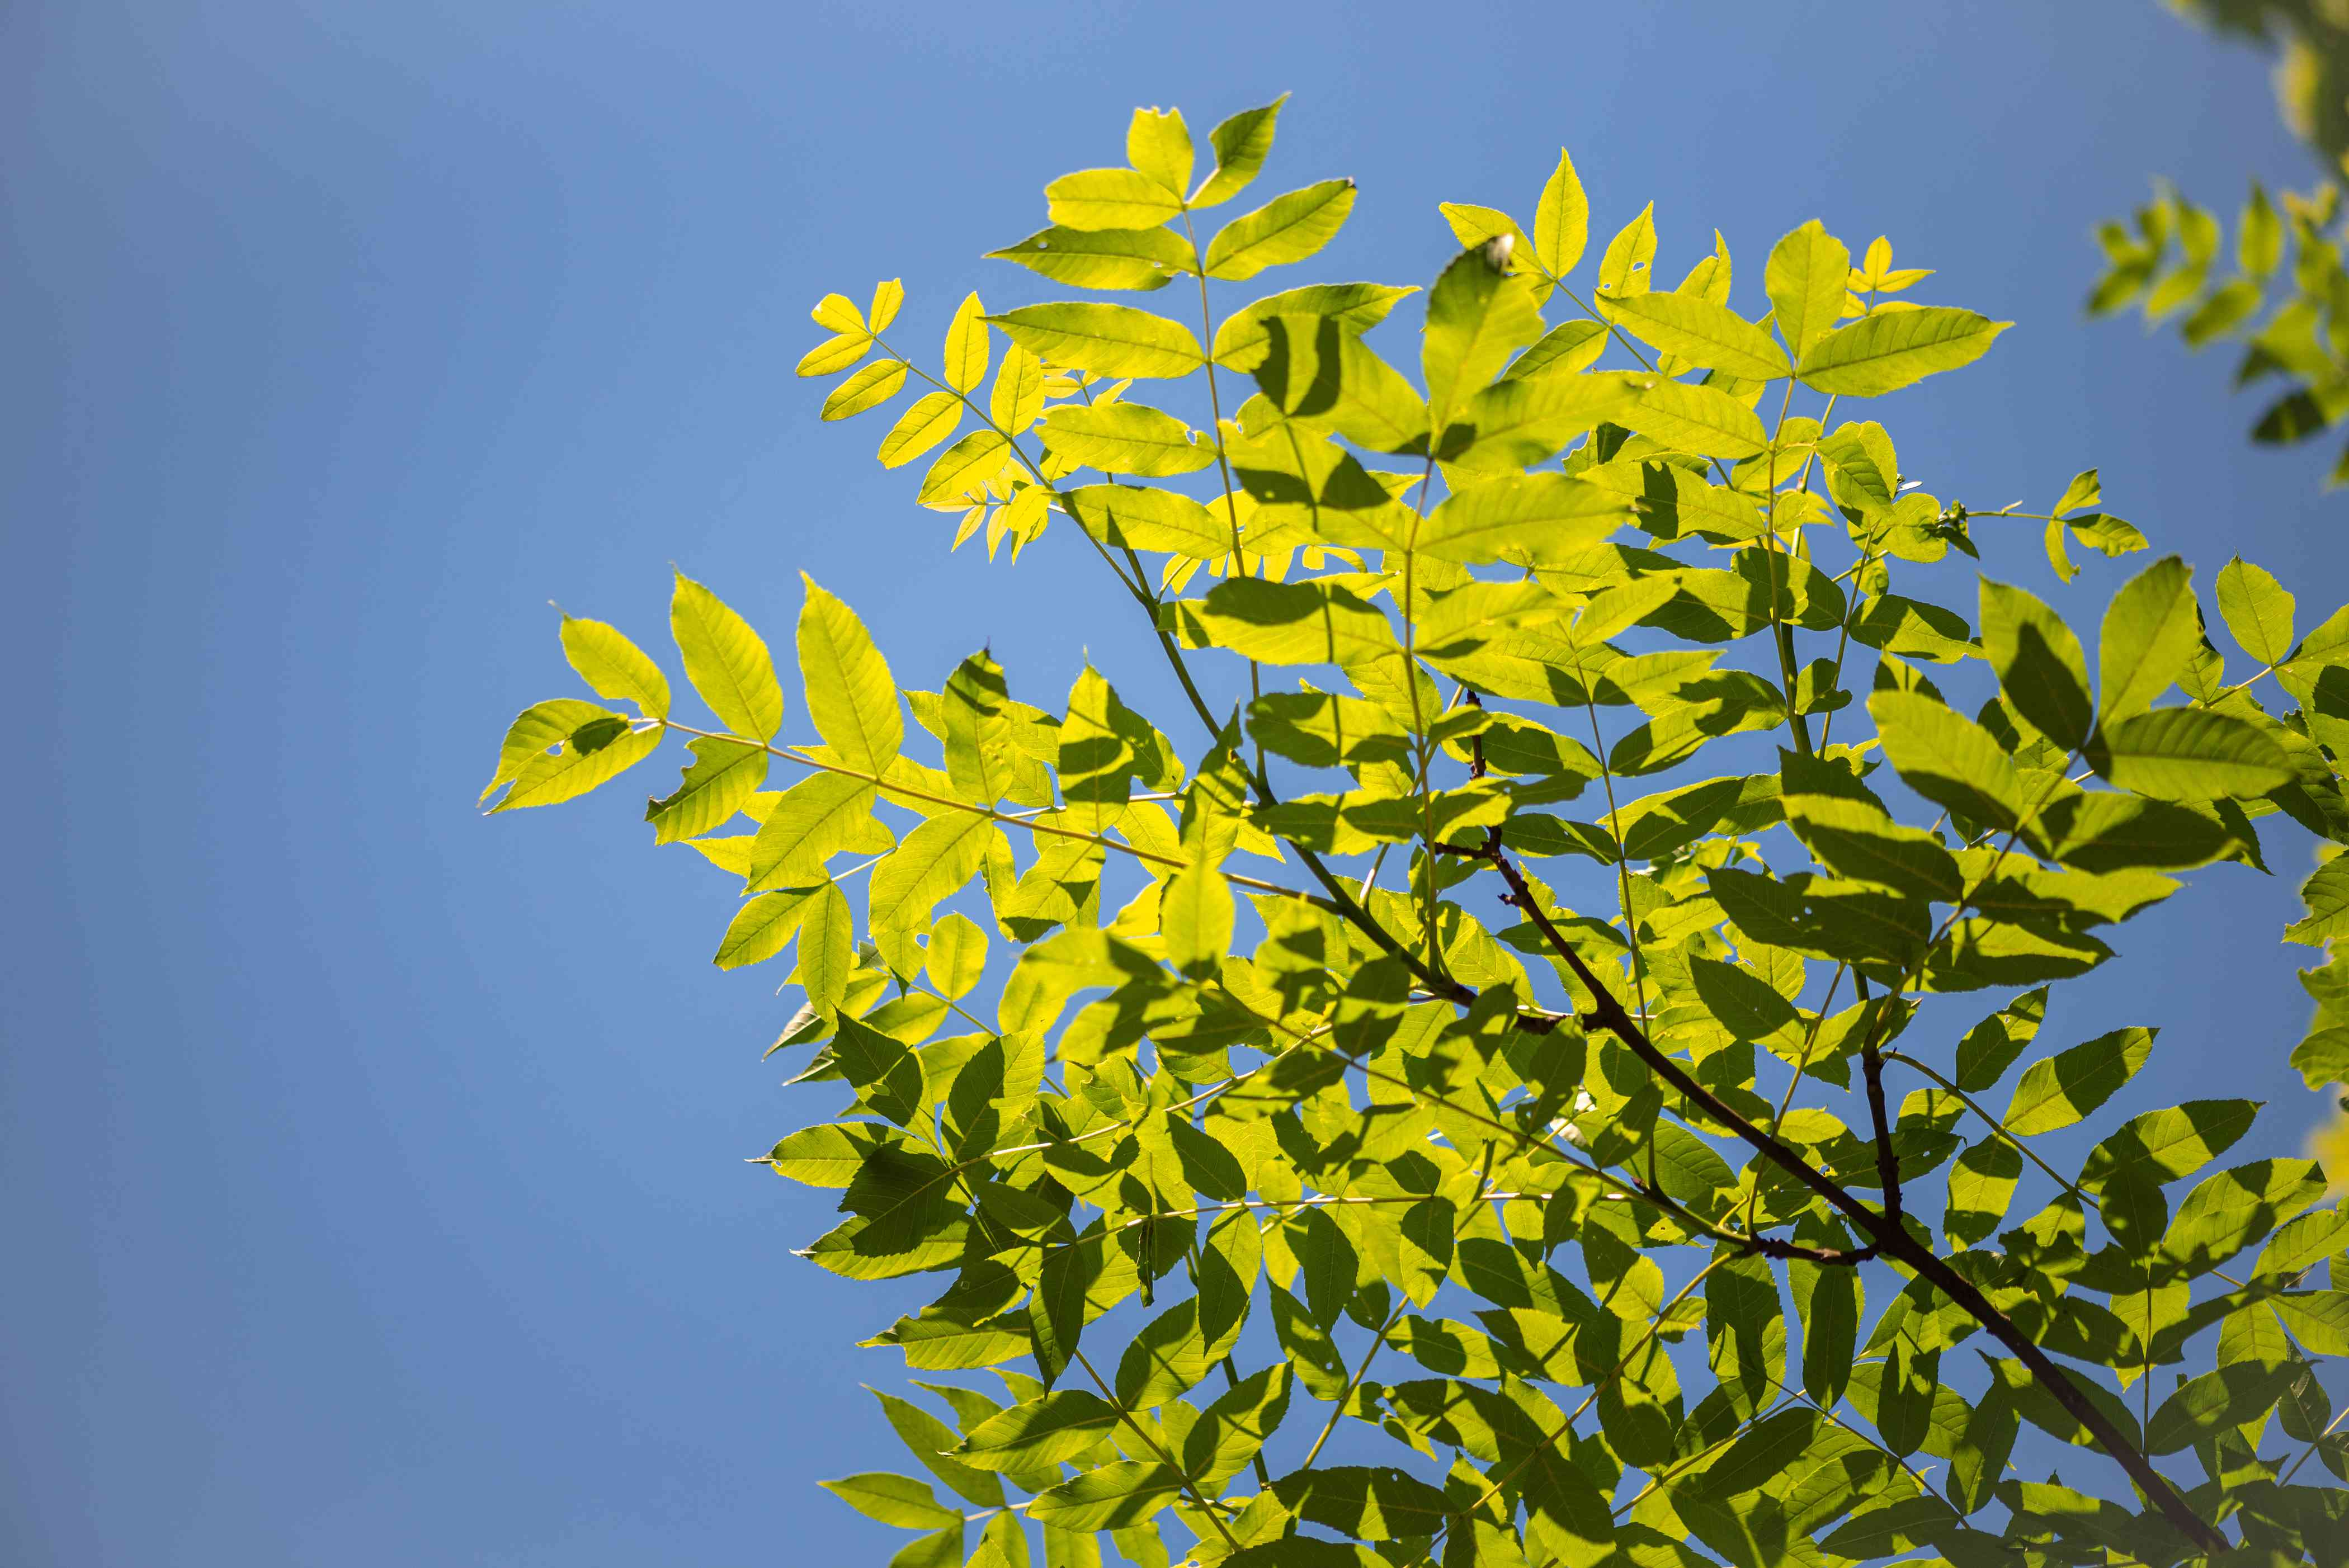 European ash tree branches with yellow-green leaves against blue sky